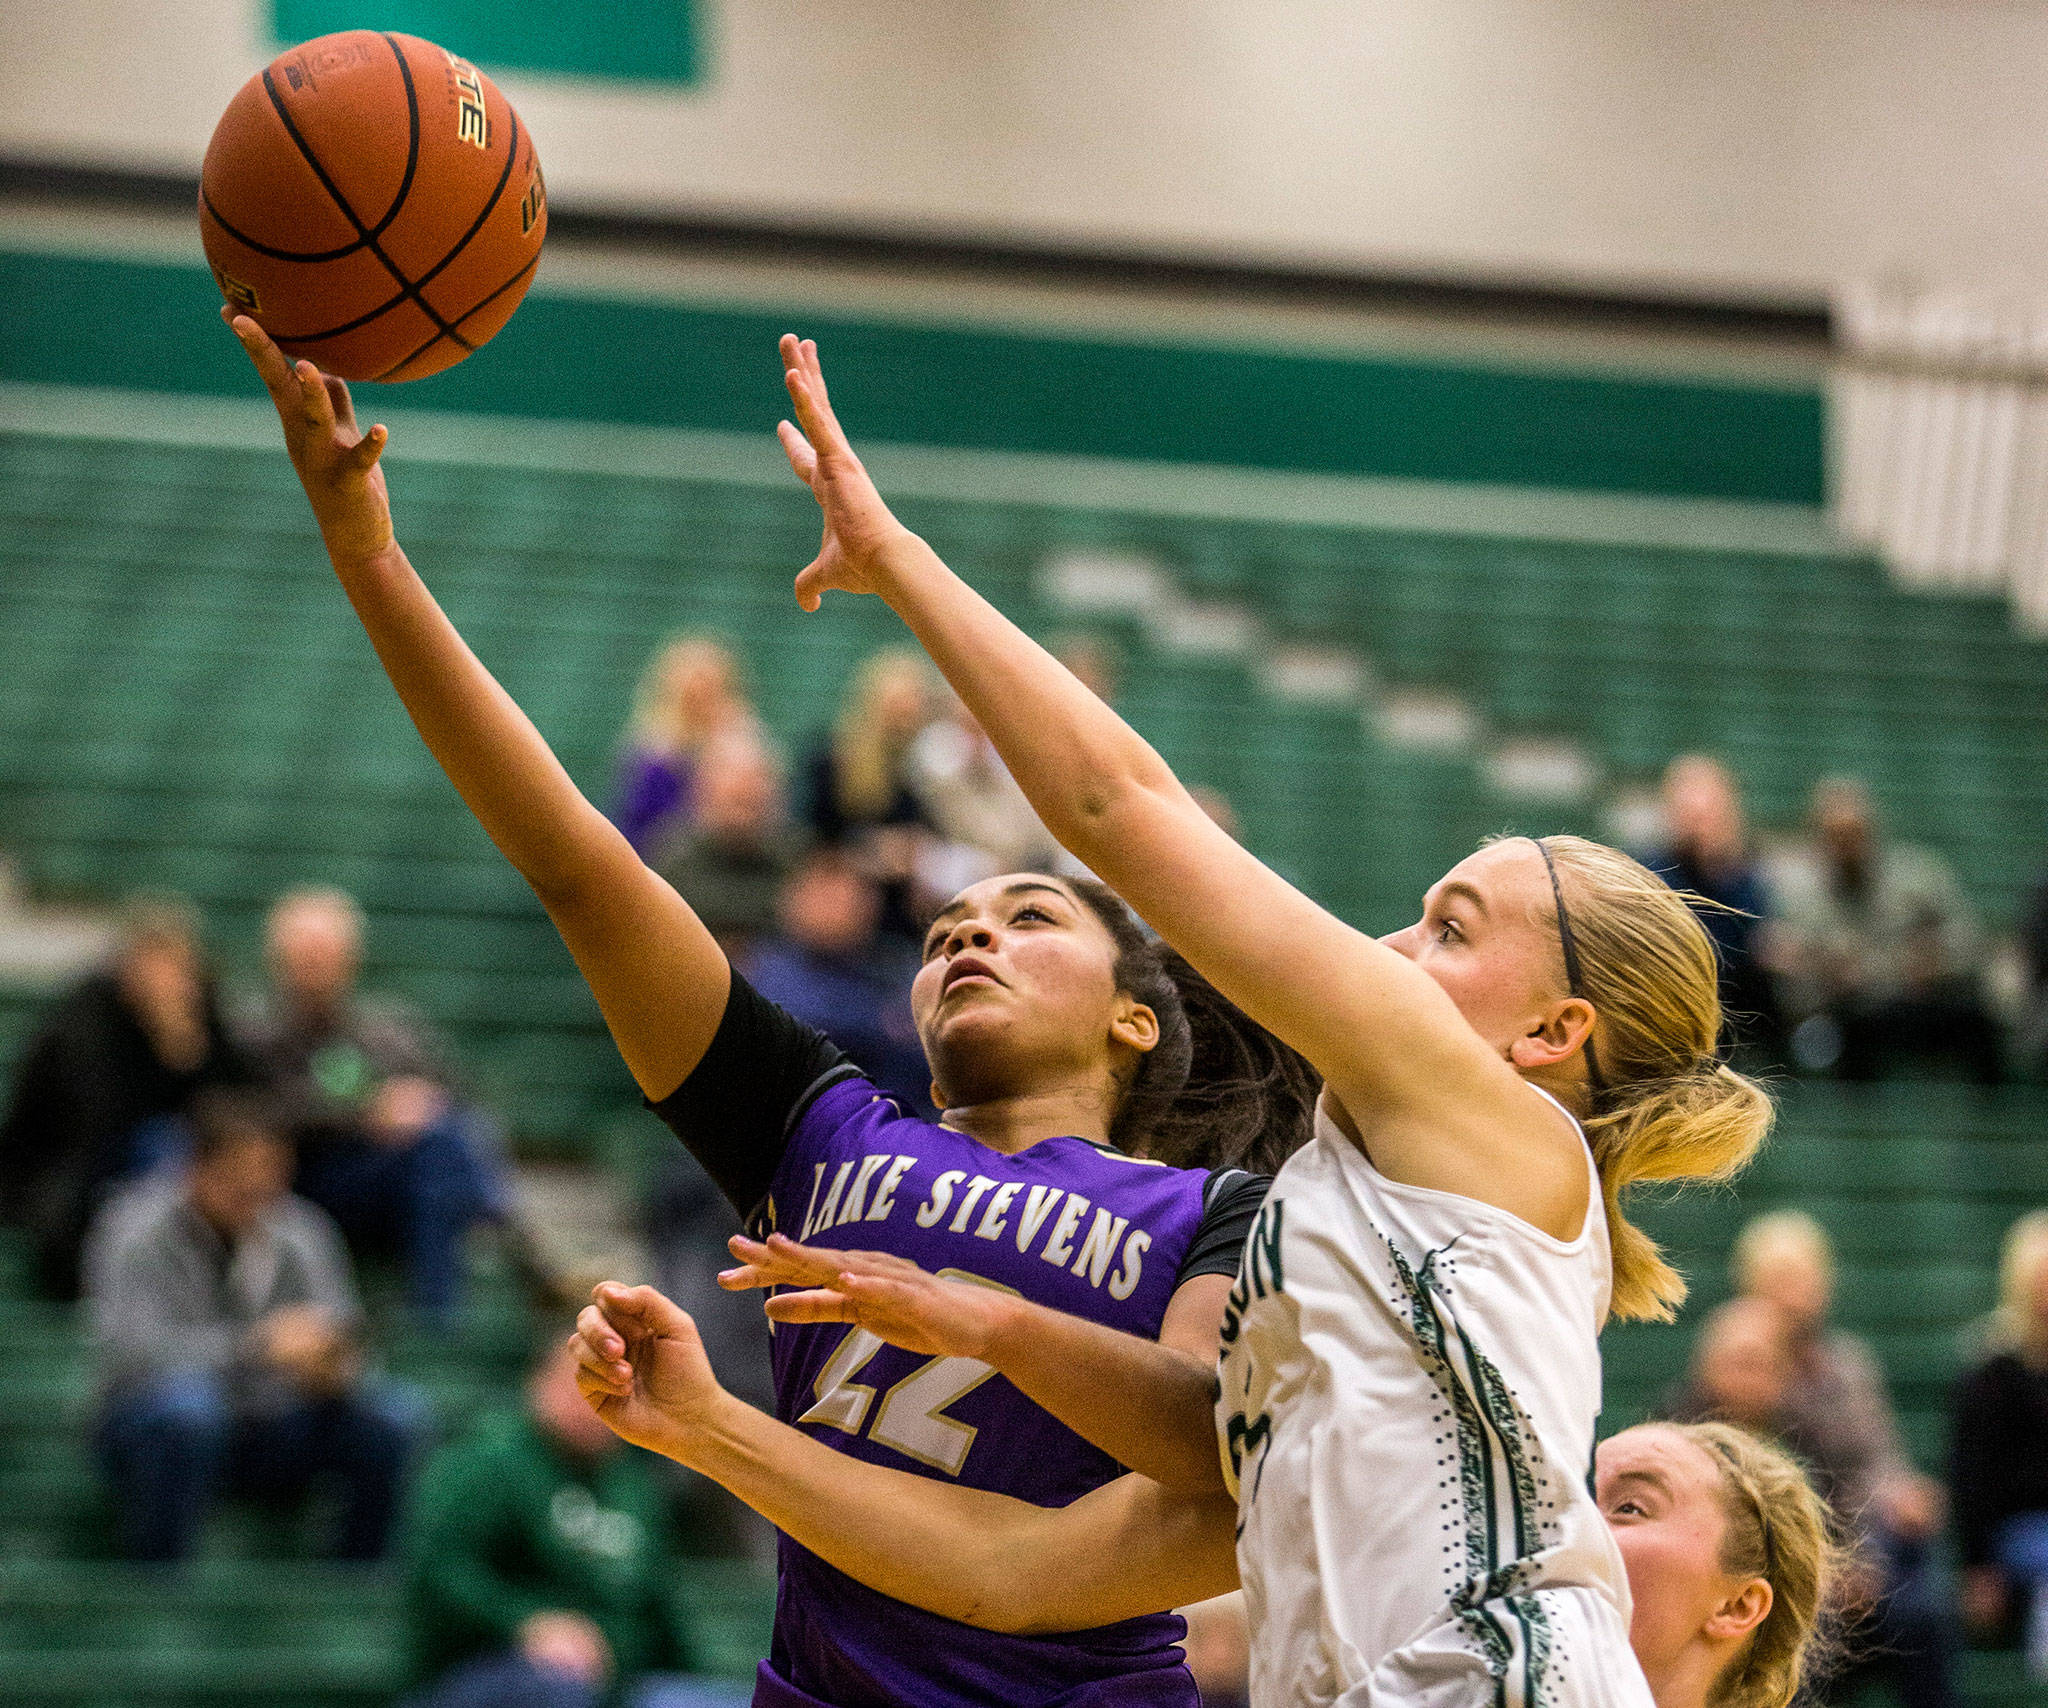 Lake Stevens' Raigan Reed attempts a layup during the game against Jackson on Dec. 11 in Everett. (Olivia Vanni / The Herald)